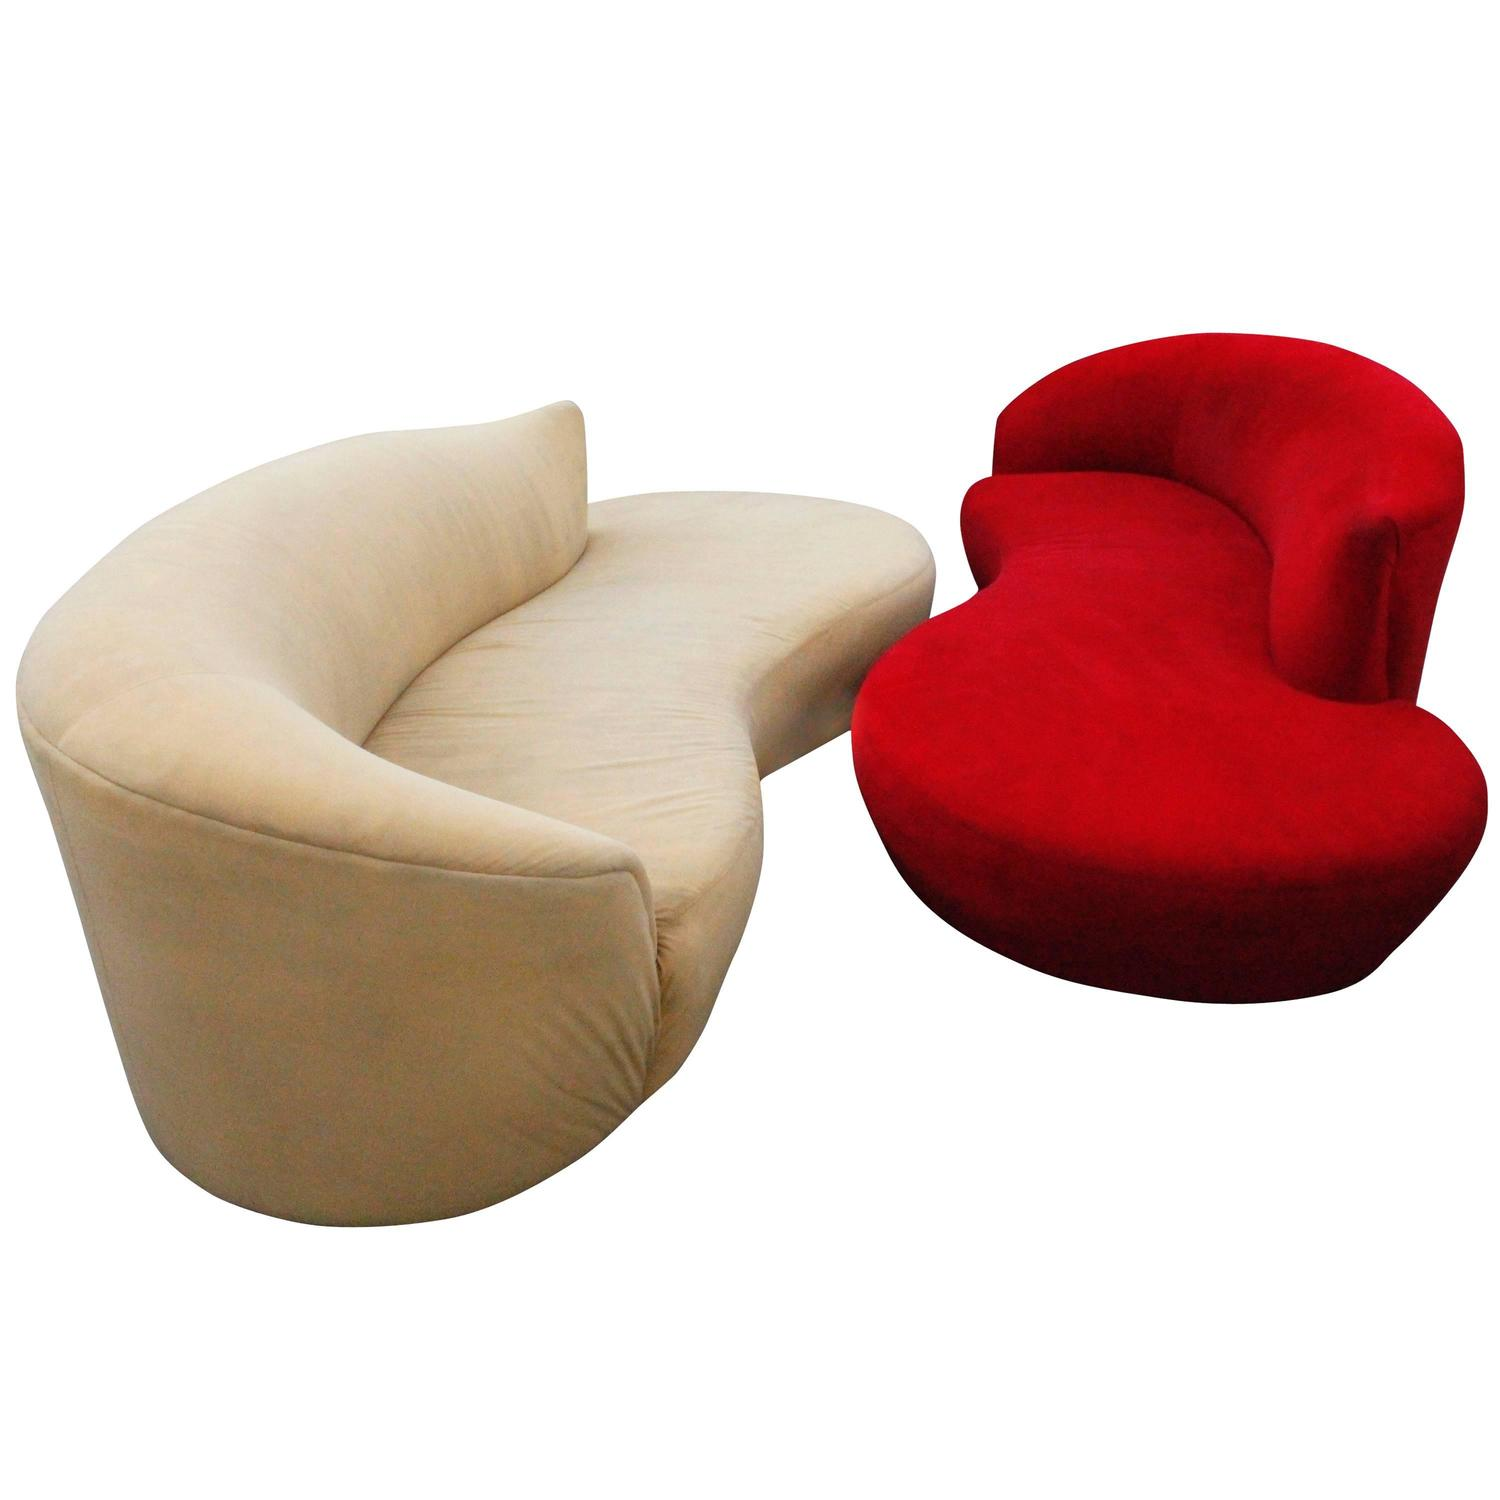 Cloud Sofas Pair Of Curved Kidney Chrome Ultrasuede